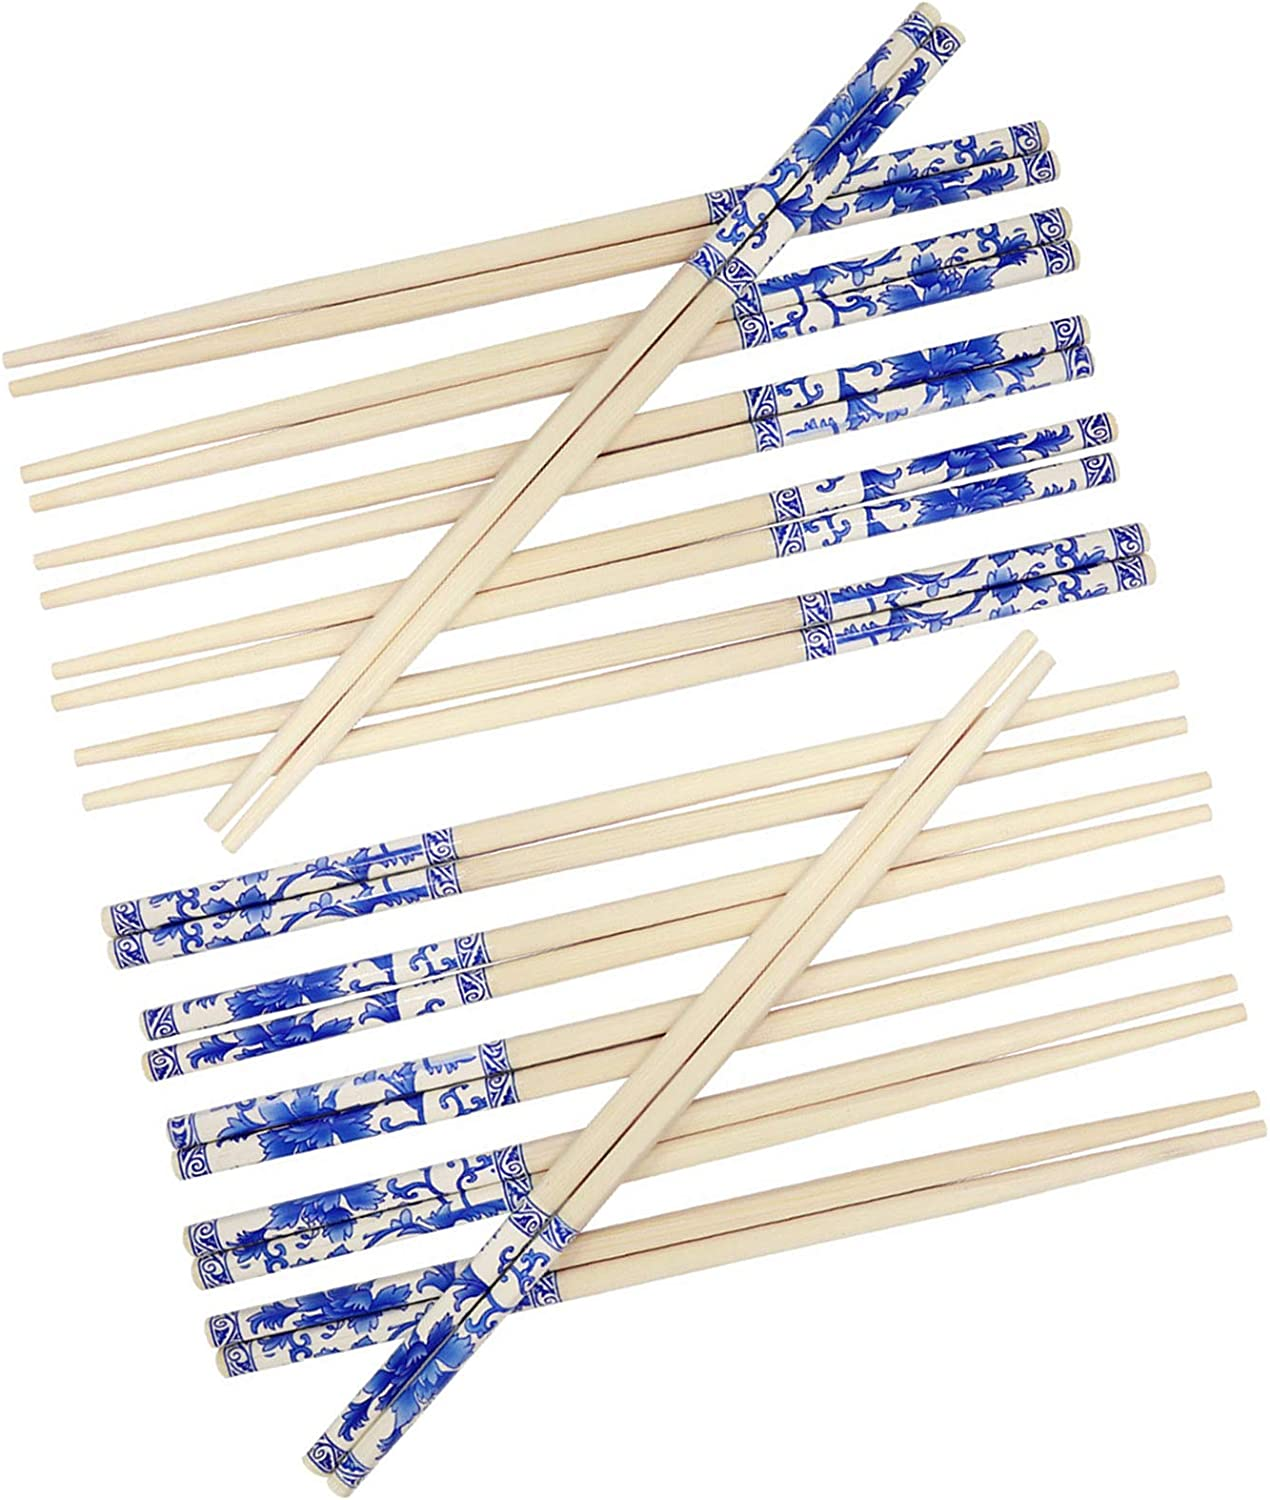 24 Pairs DisposableBambooChopsticks for Eating Chinese Japanese Korean Foods Noodles Sushi Smooth Separated Wooden Chopsticks for Takeout Asian Restaurants Travel Picnic DIY Crafts Projects, 9.45 in